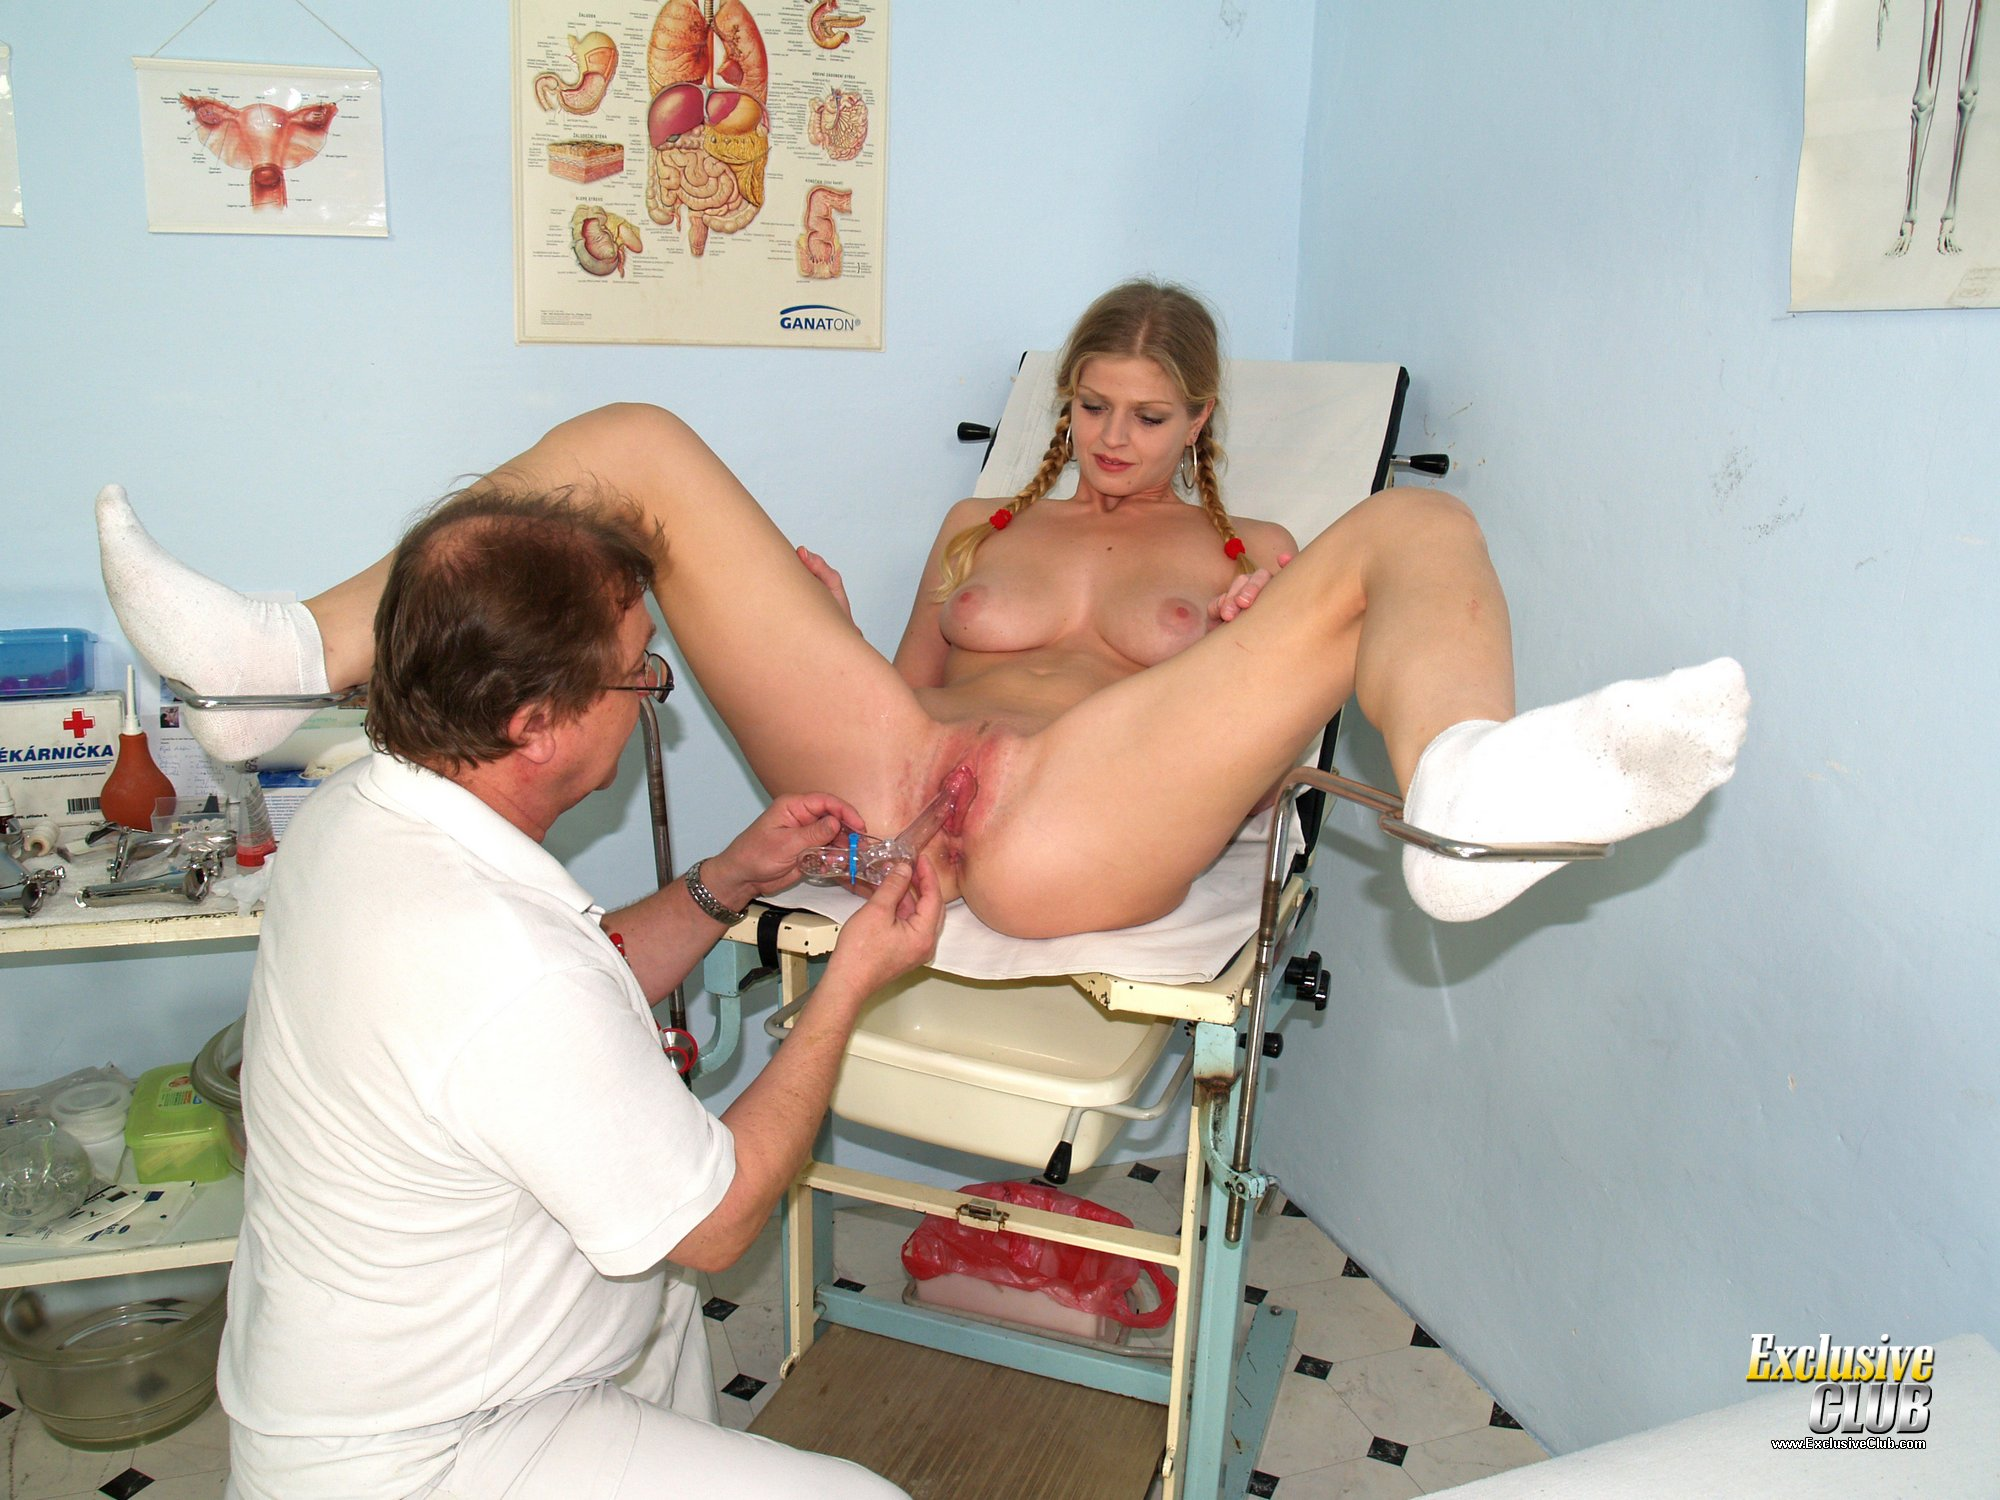 Kinky gyno exam at gyno clinic with old bizarre doctor 8